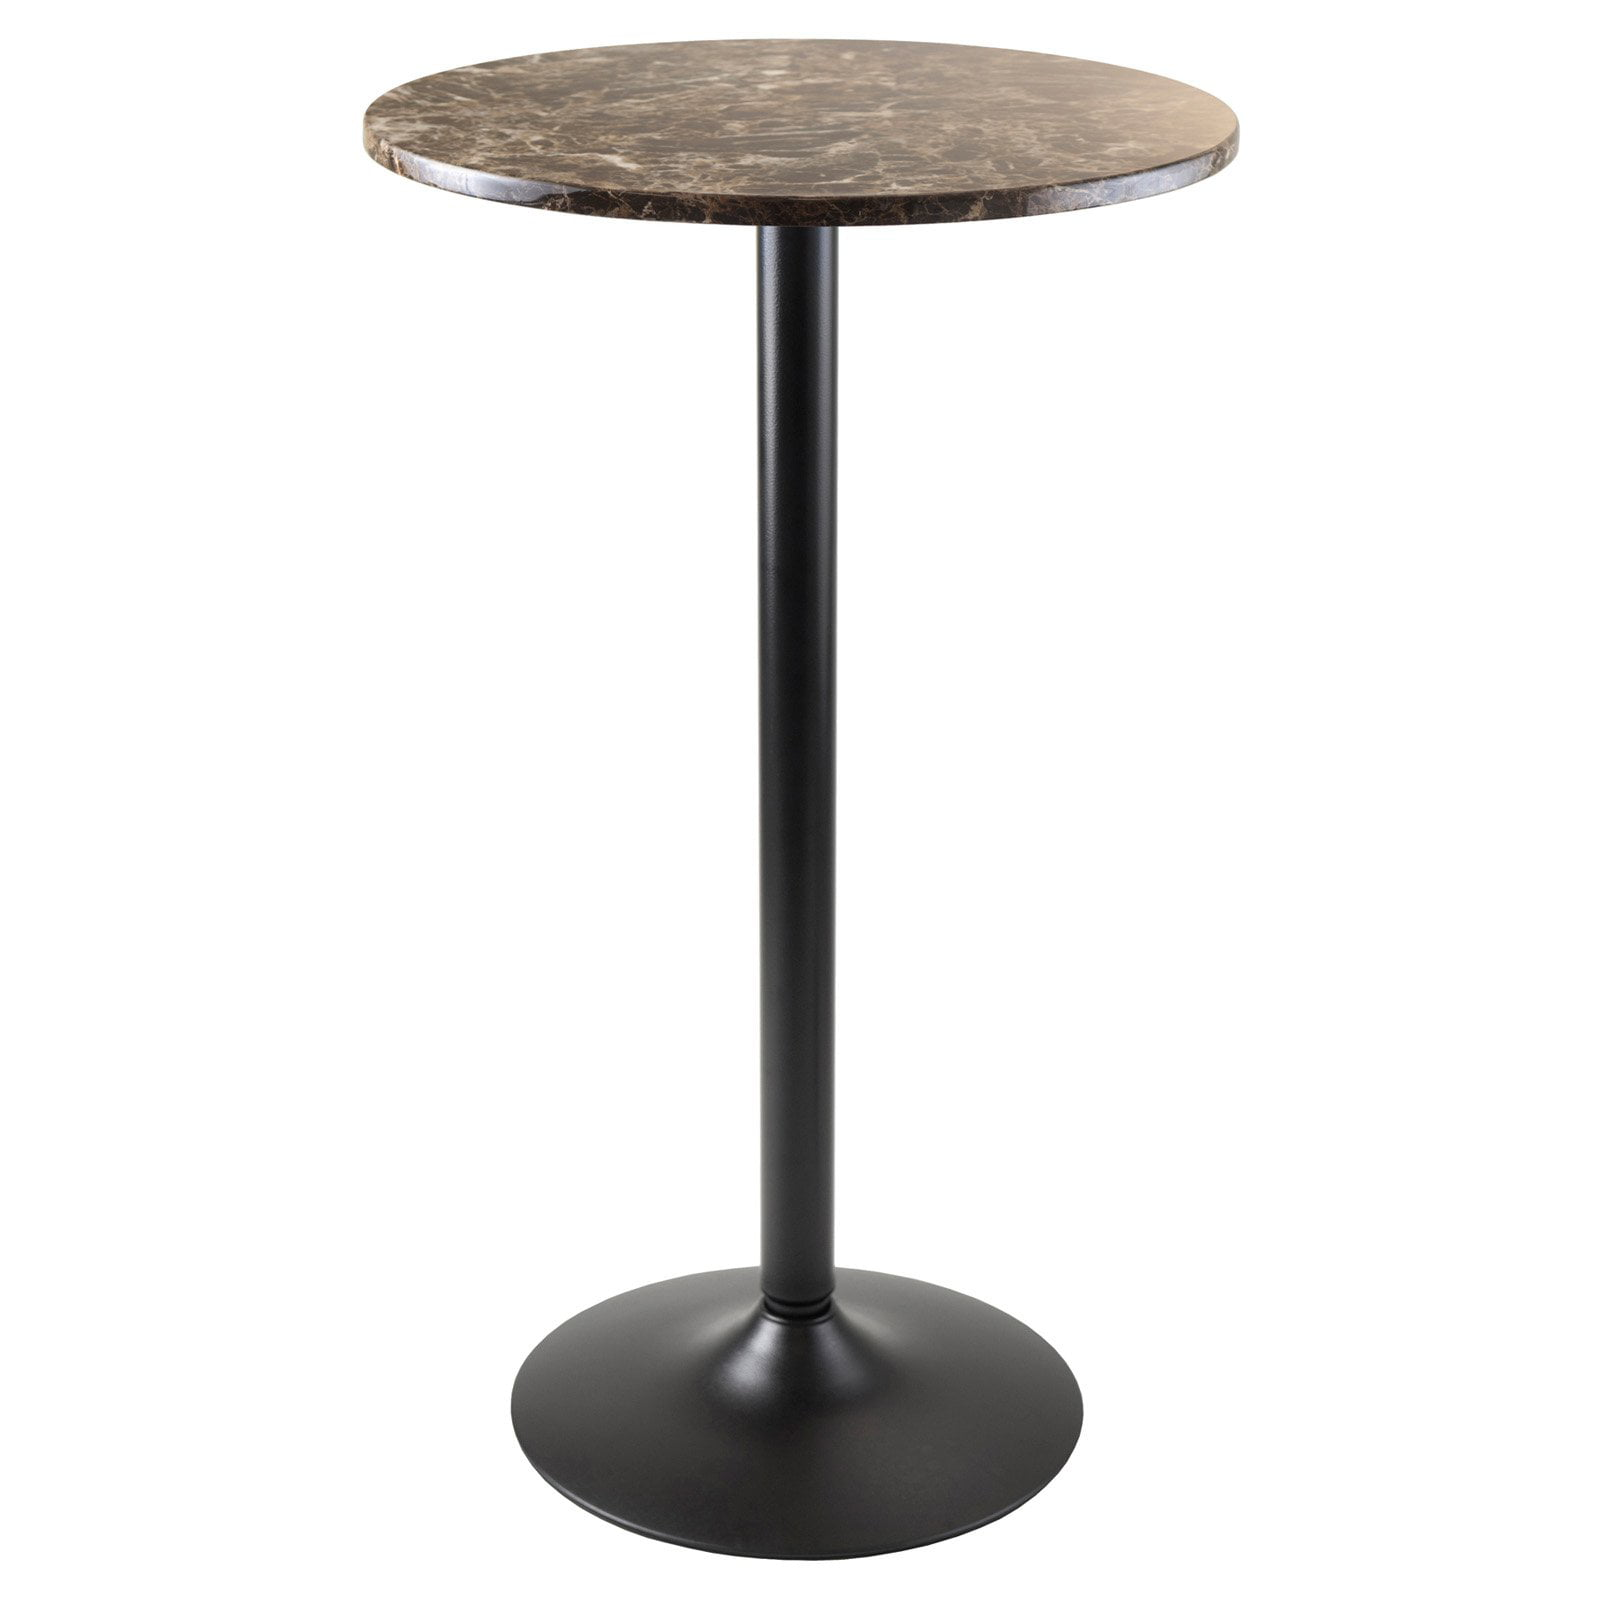 Winsome Wood Cora Round Pub Table Faux Marble W Black Base - 30 round marble table top